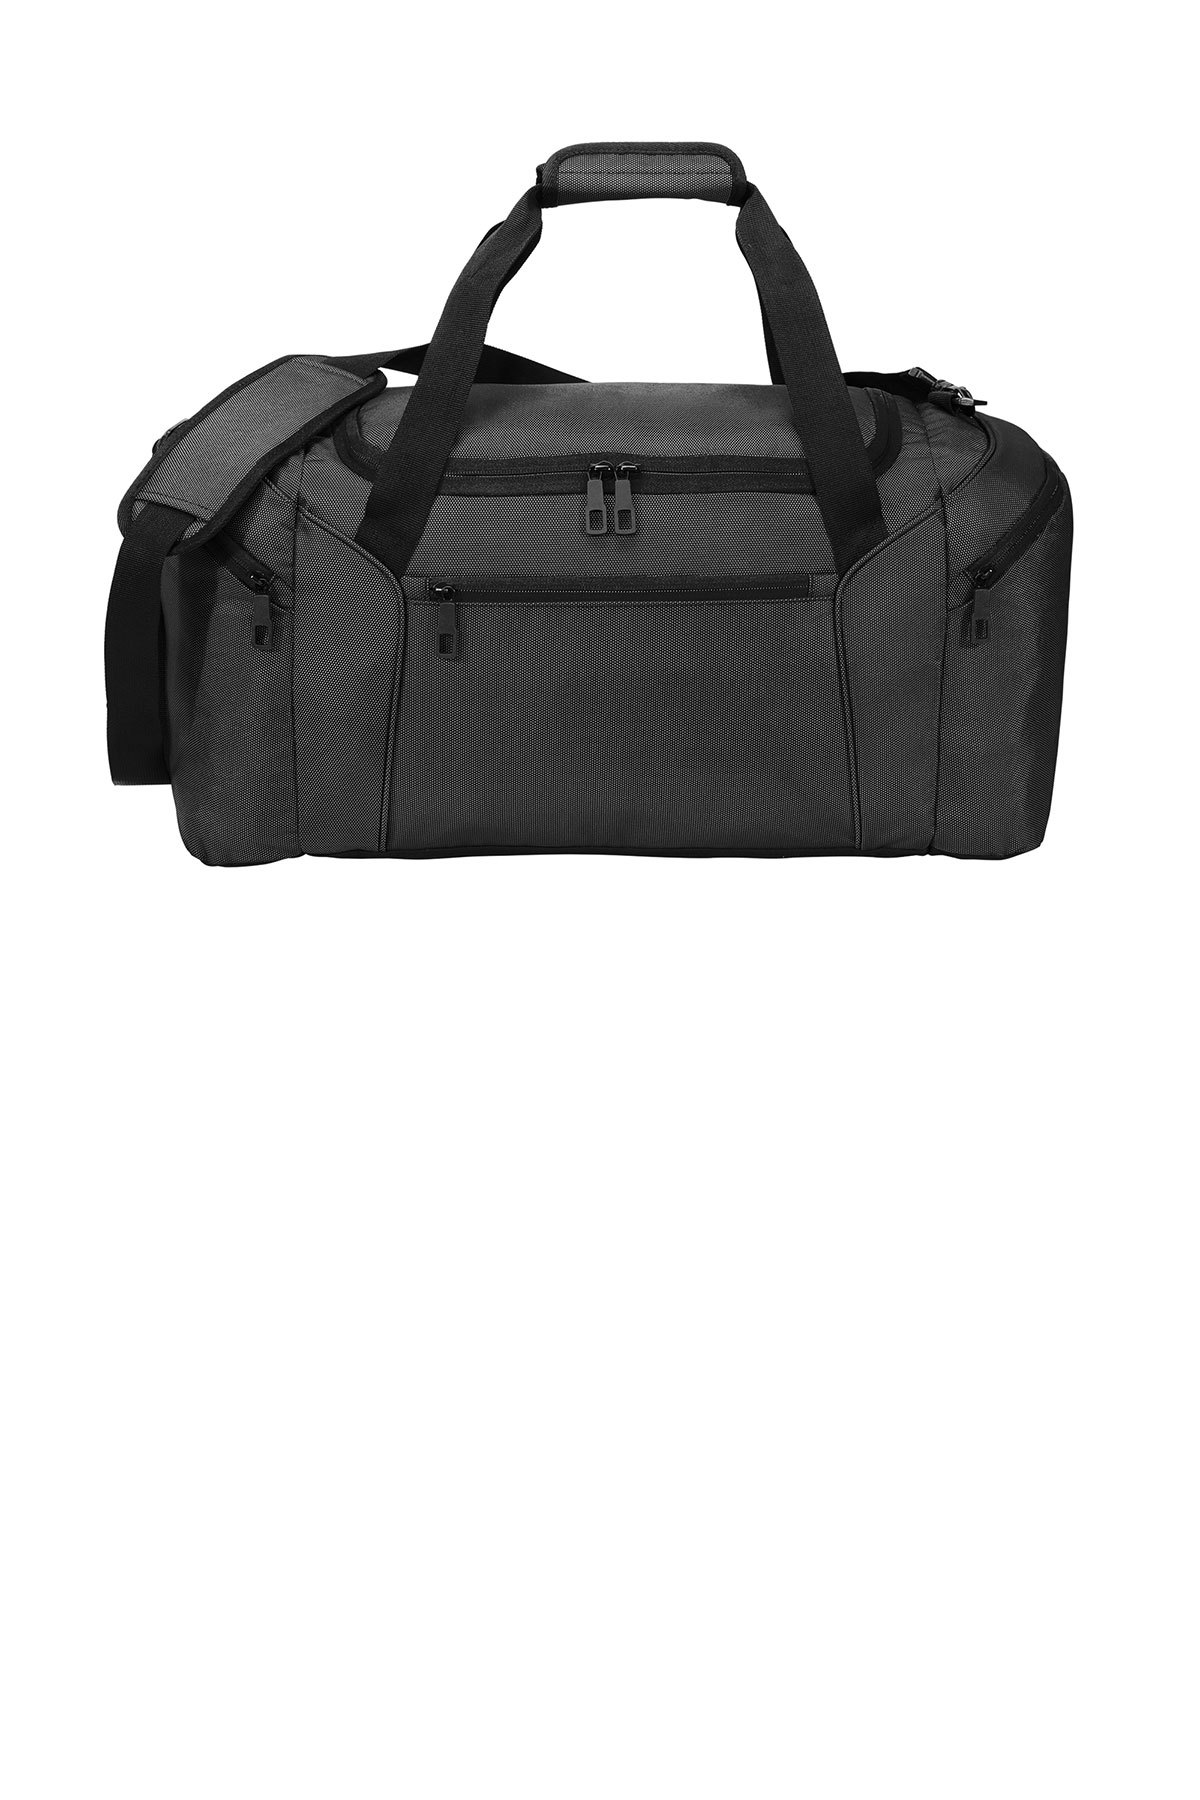 Port Authority BG805 - Form Duffel